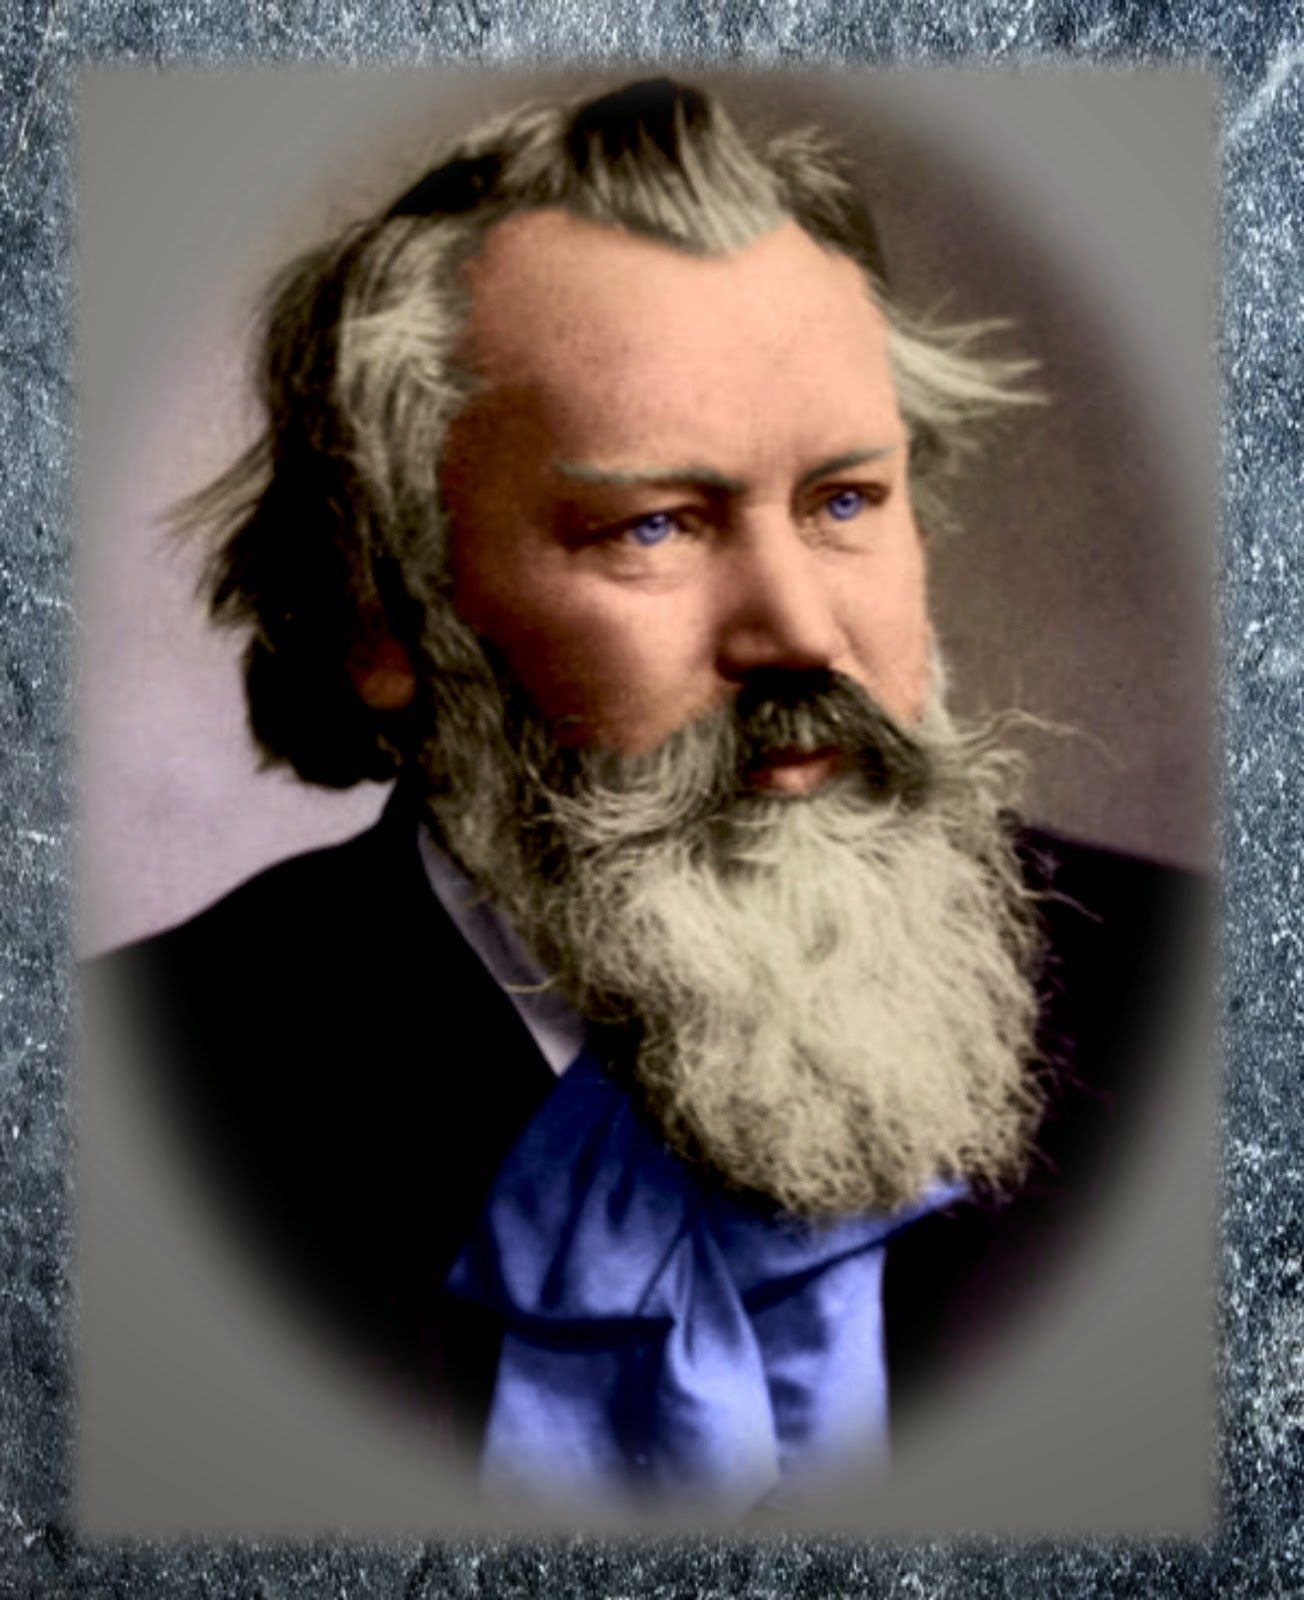 johannes brahms is often held up as an example of a composer who wrote absolute music music that does not represent anything or is not about anything